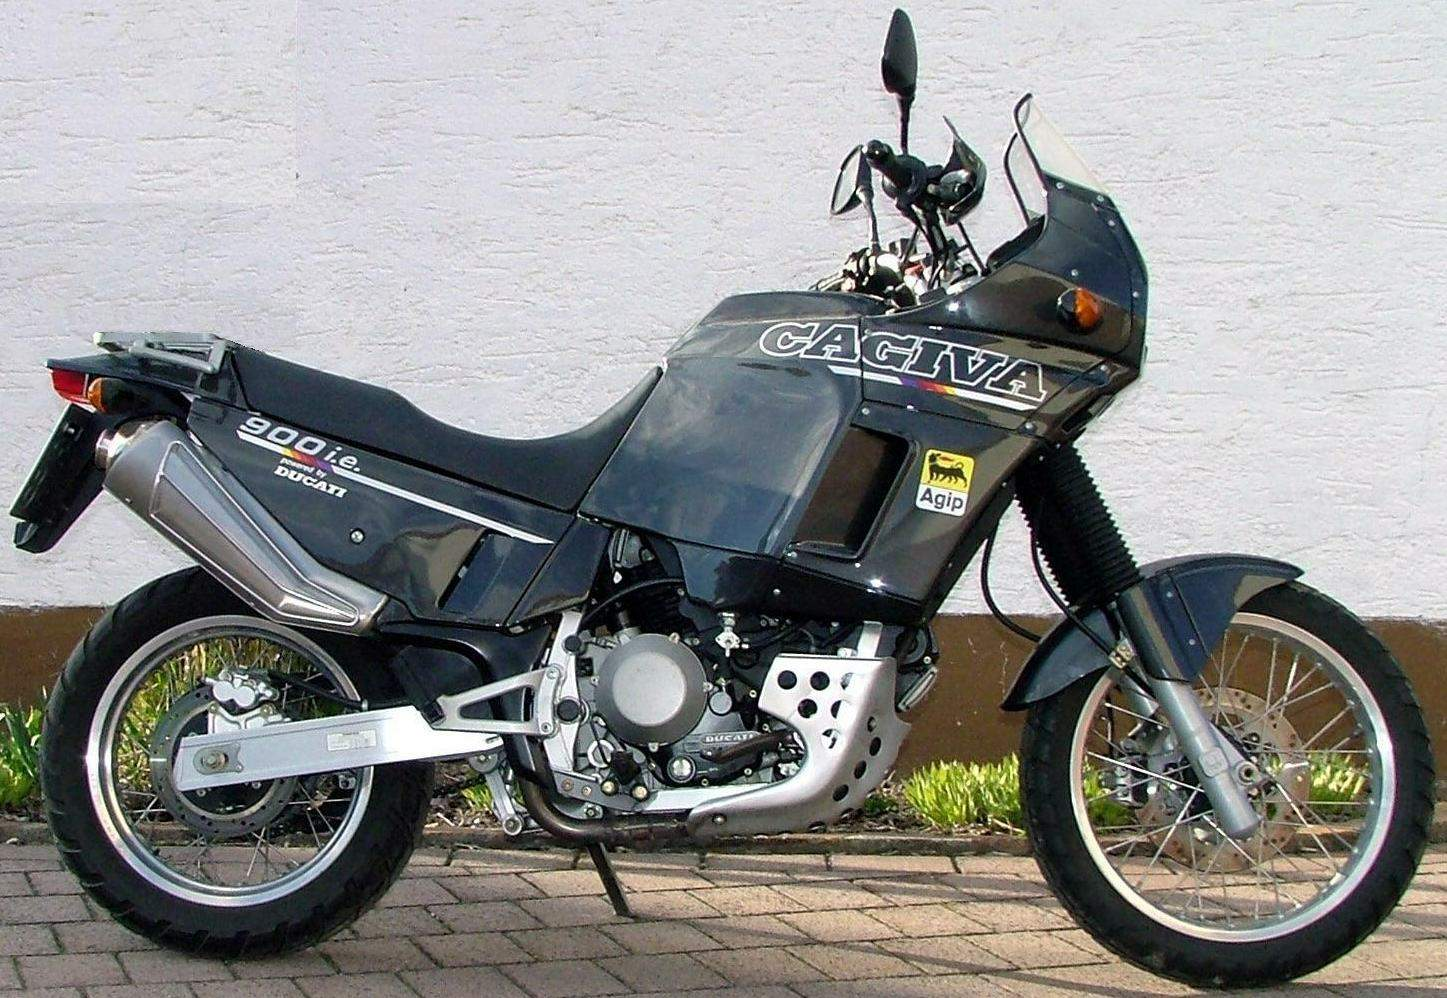 Cagiva Elefant 900 IE 1990 images #68844